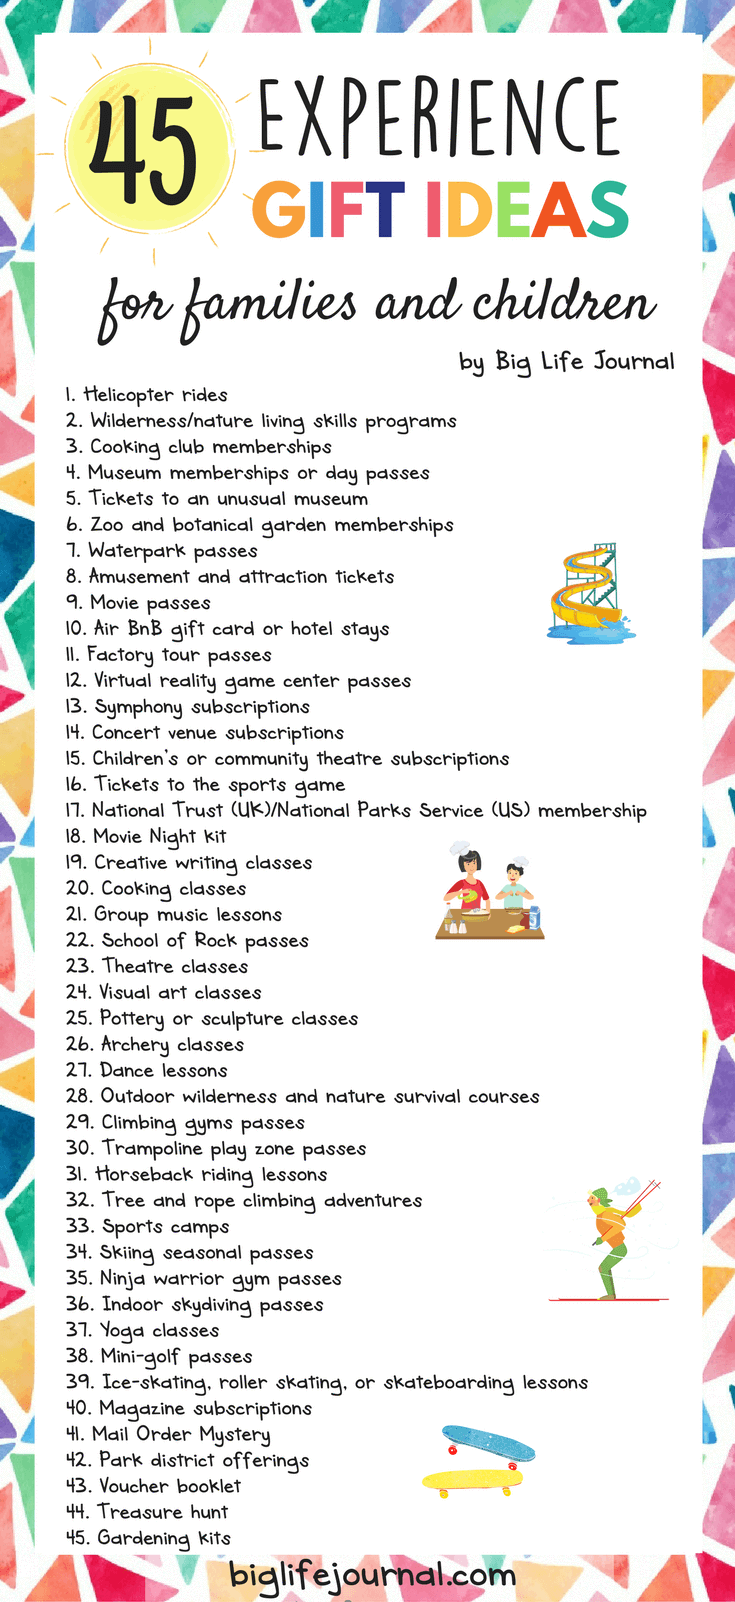 50 Experience Gift Ideas for Families & Children | Growth Mindset ...